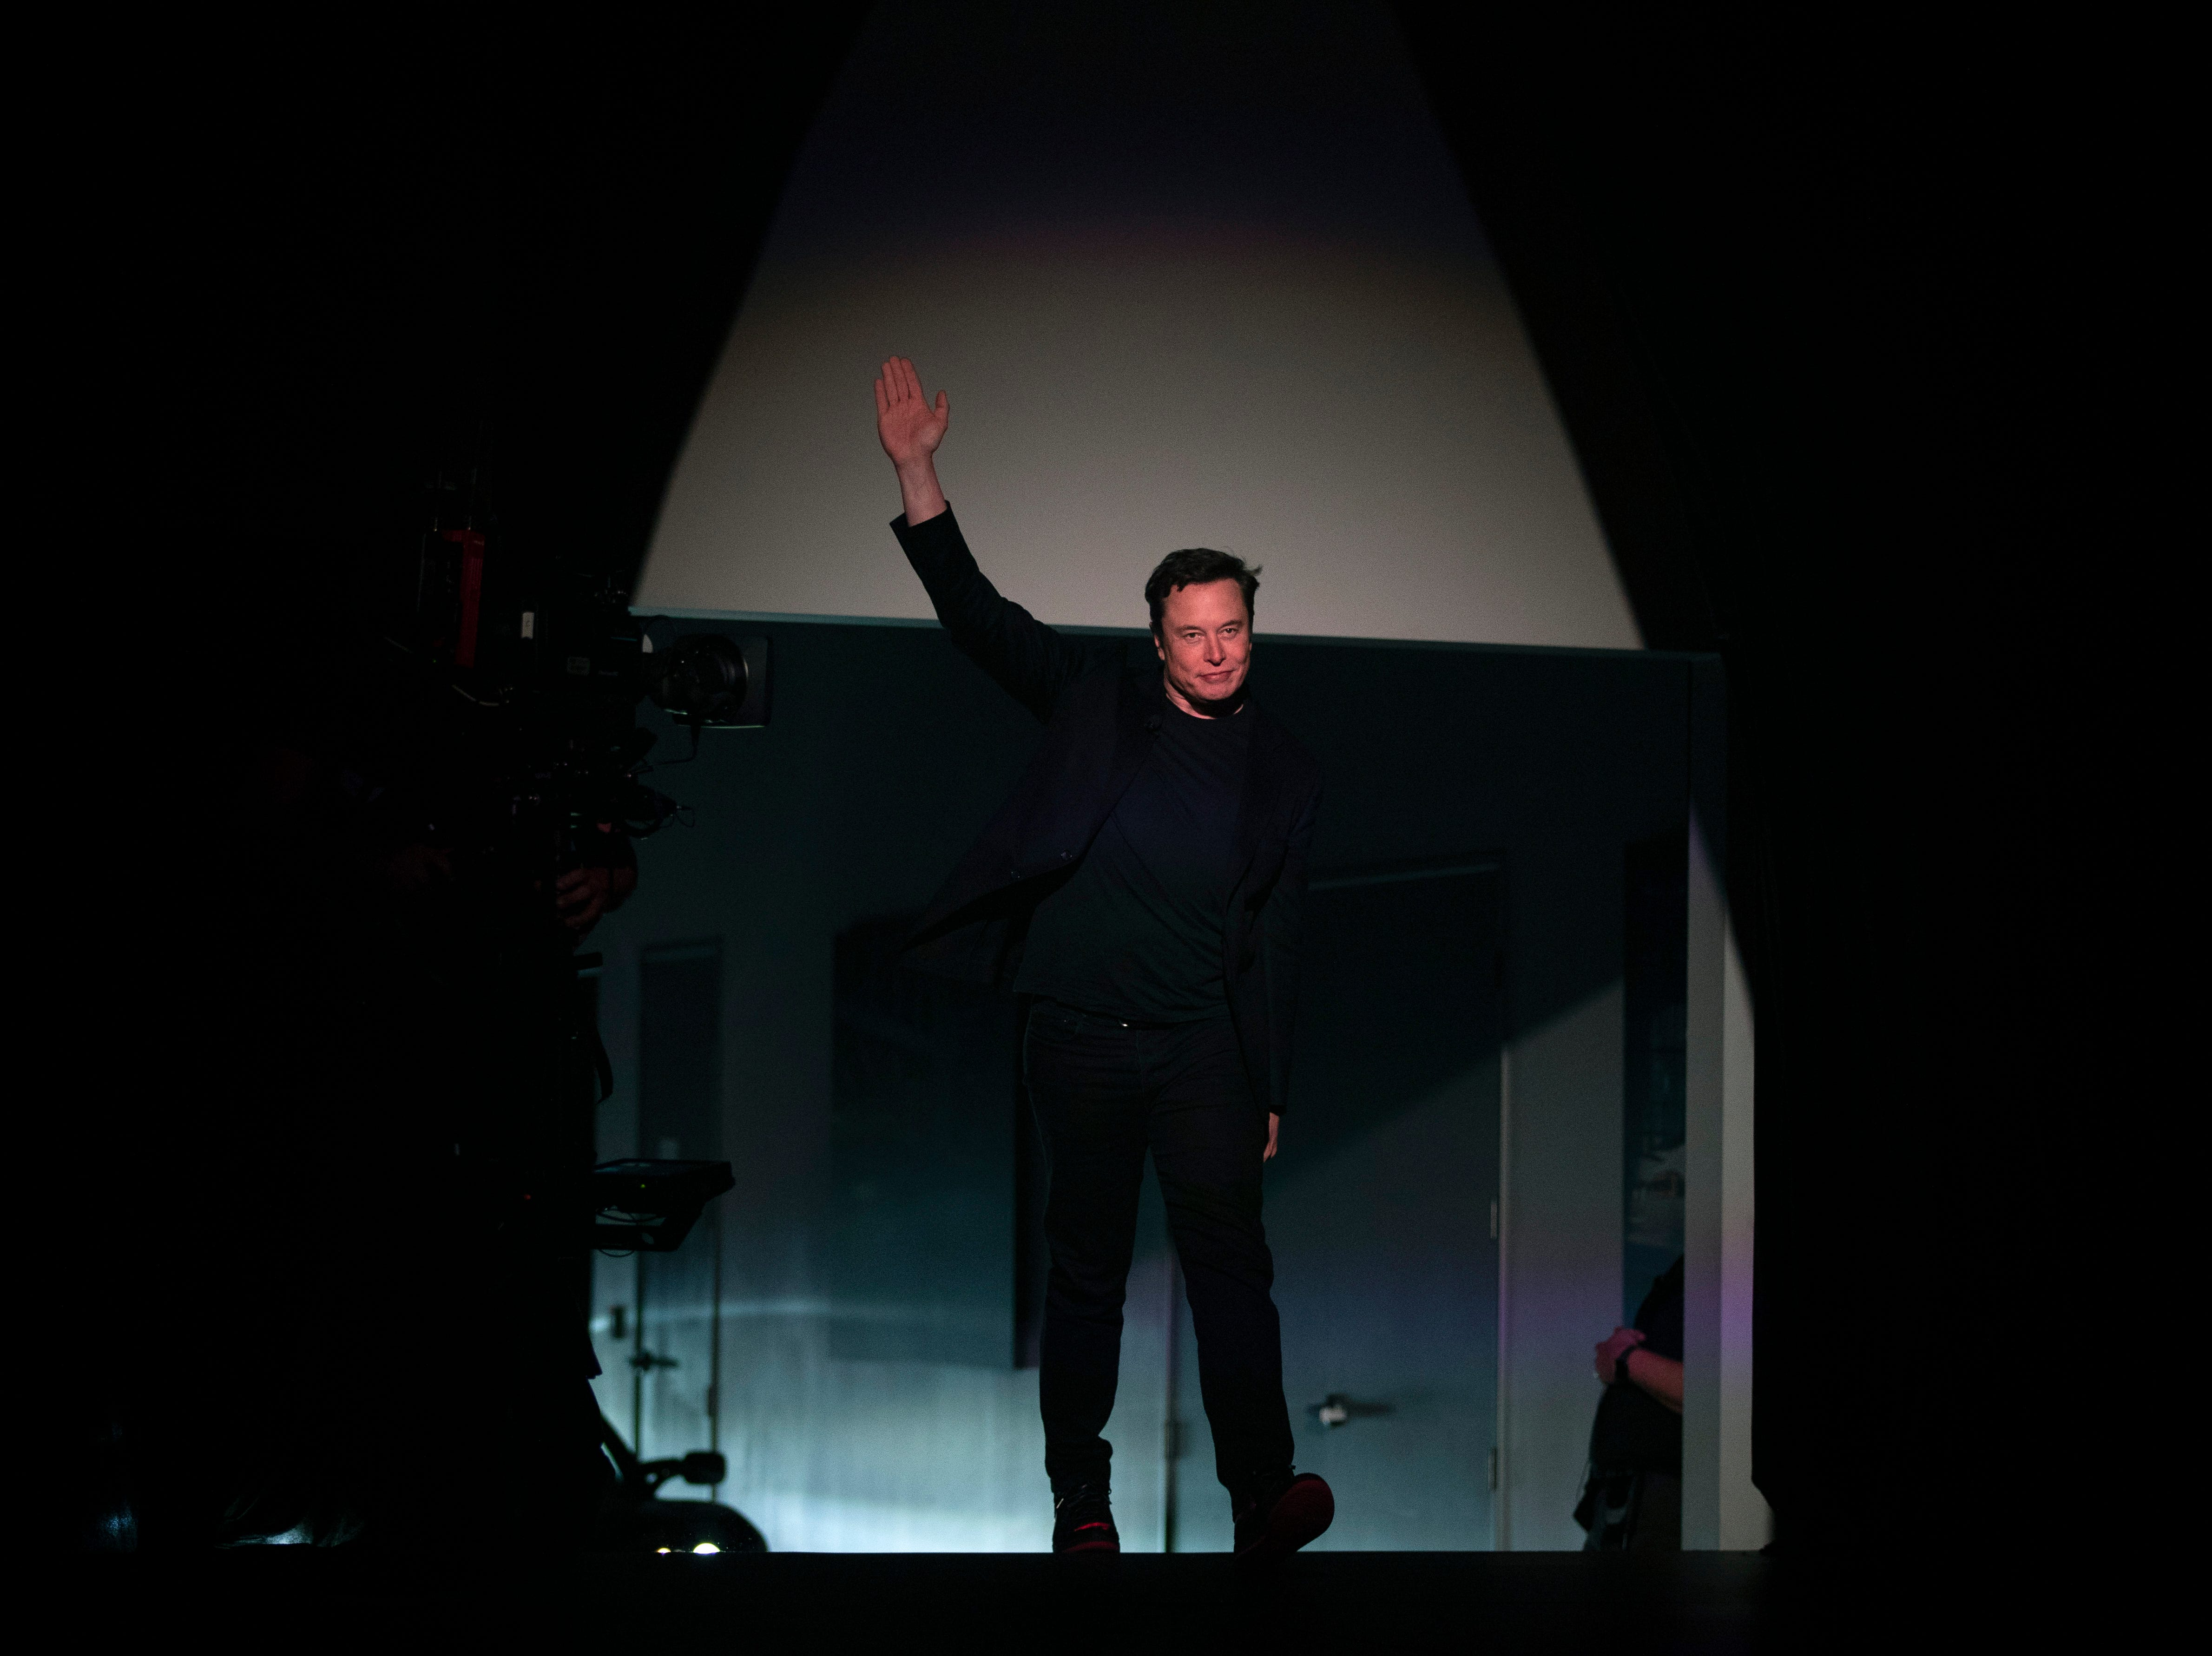 Tesla CEO Elon Musk waves as he walks onto the stage to introduce the Model Y at the company's design studio Thursday, March 14, 2019, in Hawthorne, Calif. The Model Y may be Tesla's most important product yet as it attempts to expand into the mainstream and generate enough cash to repay massive debts that threaten to topple the Palo Alto, California, company. (AP Photo/Jae C. Hong)